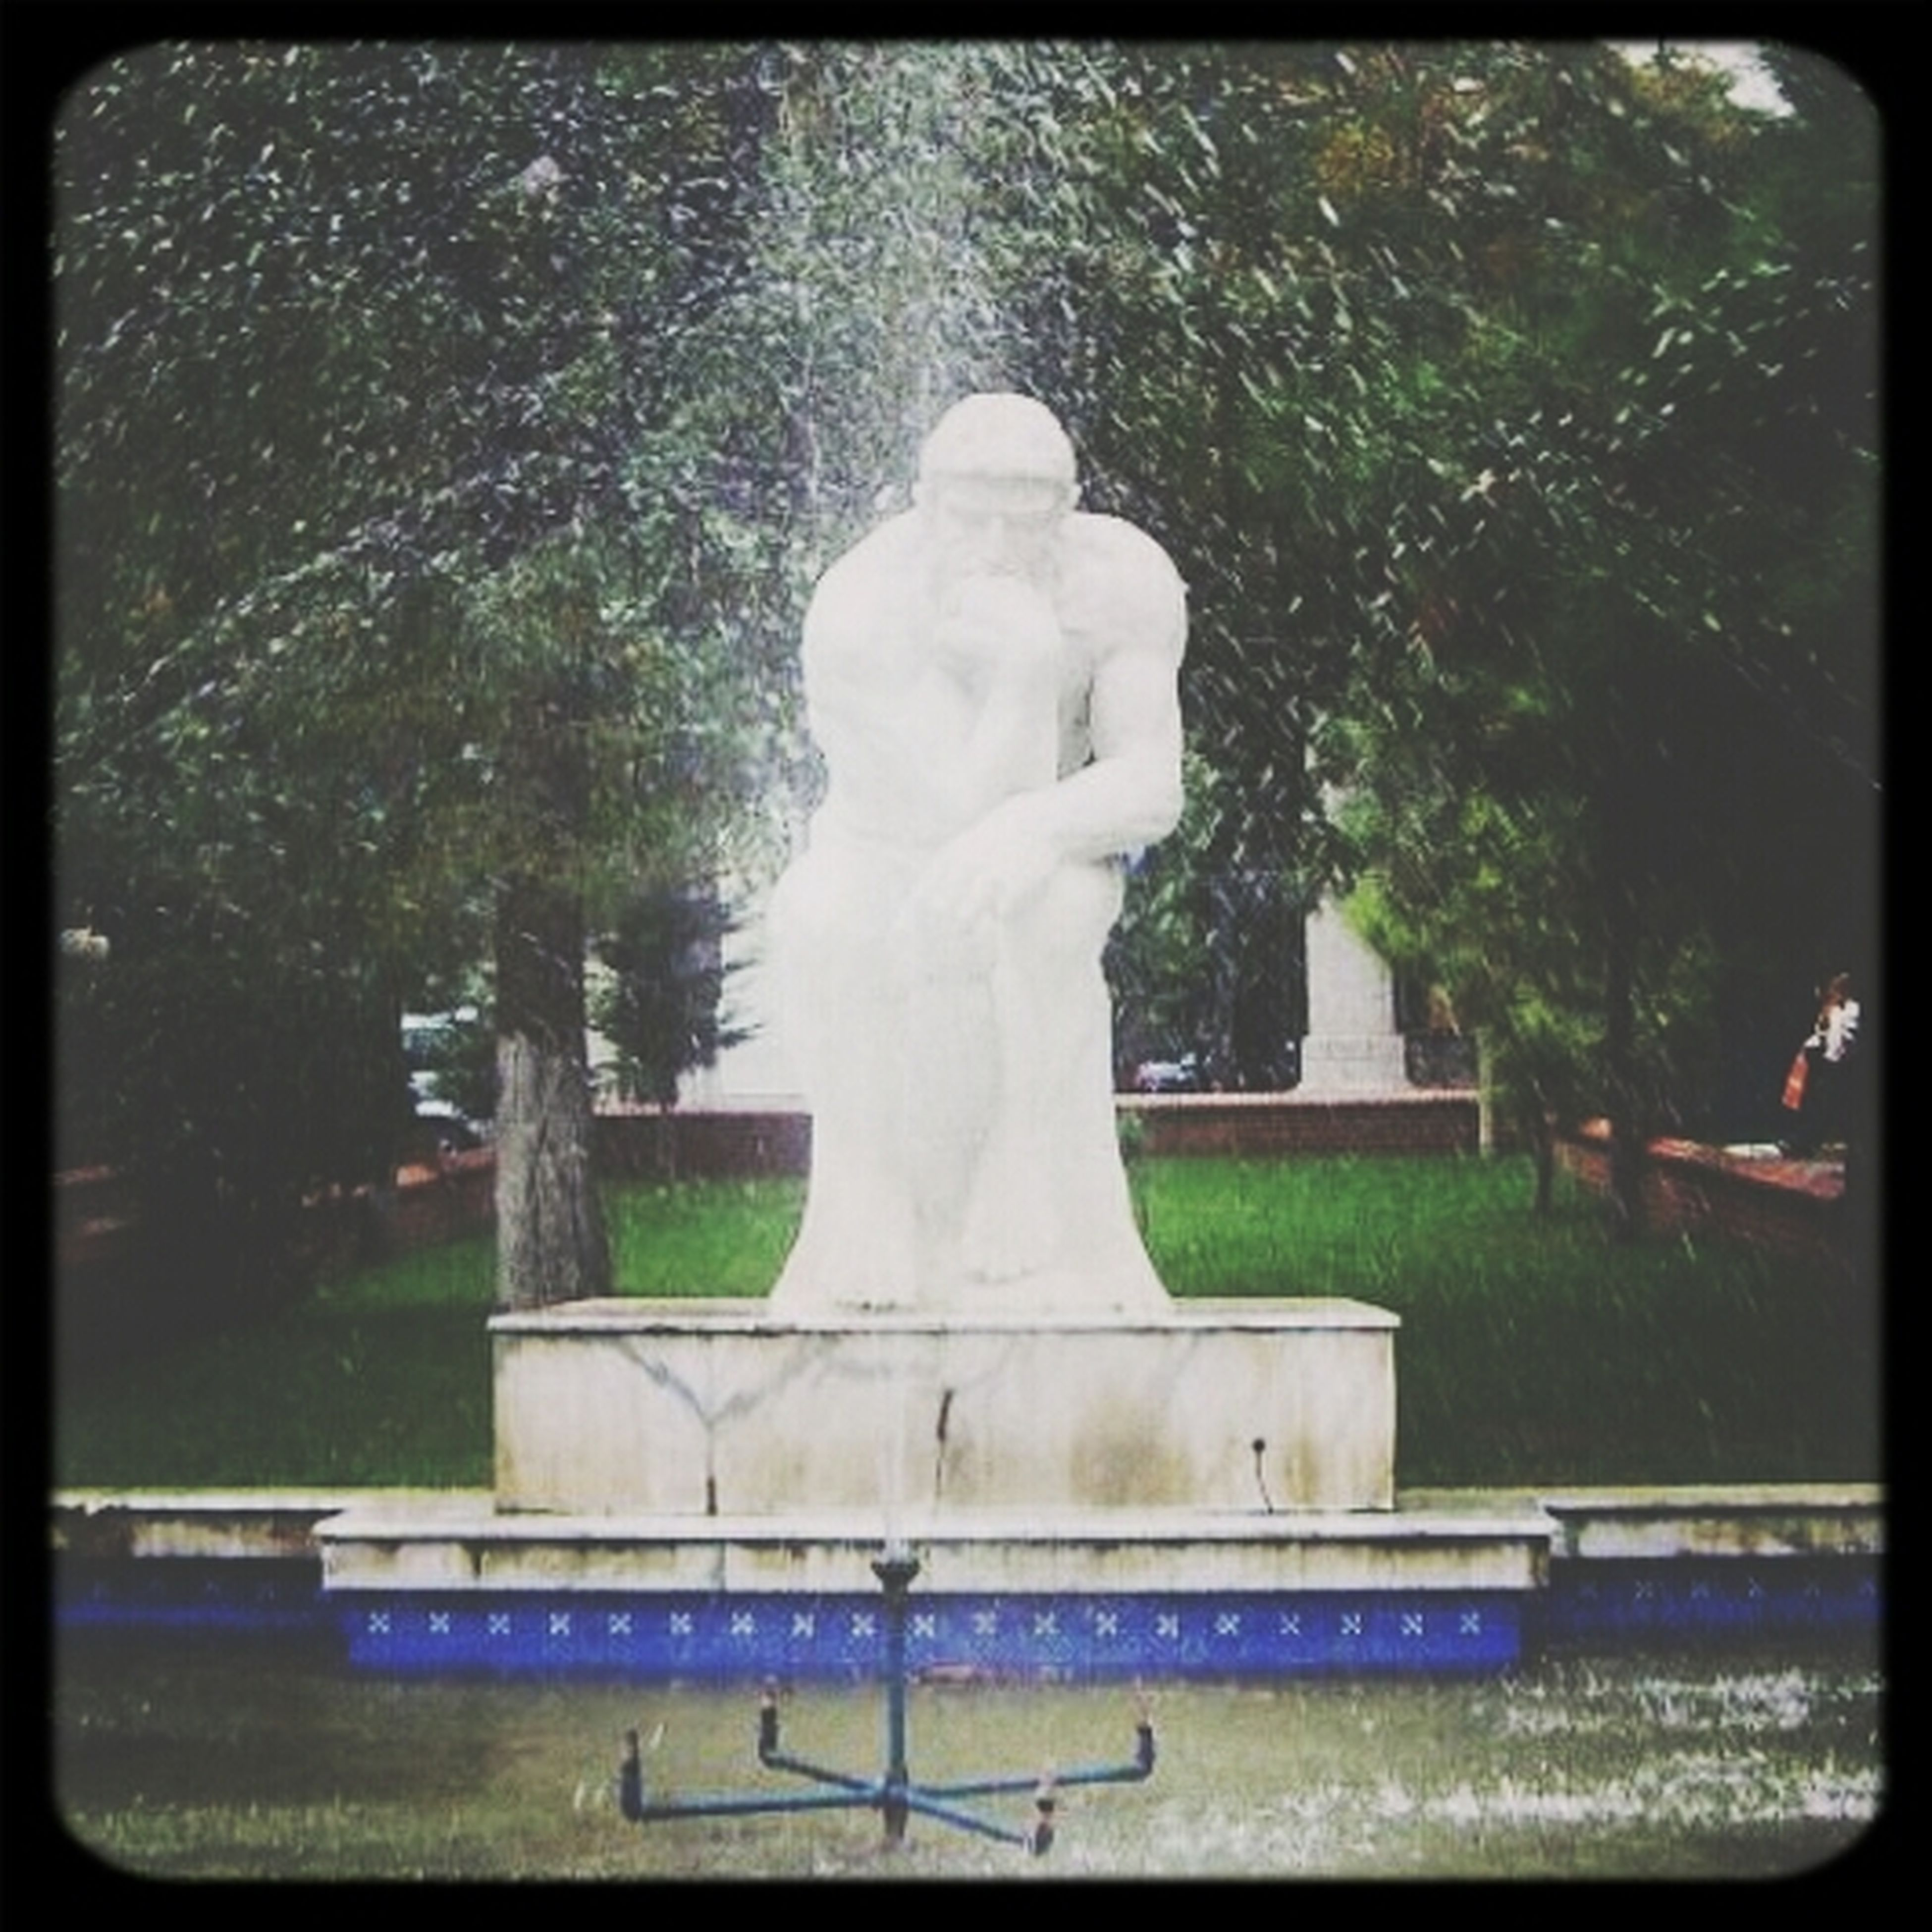 statue, human representation, sculpture, art and craft, art, creativity, transfer print, tree, animal representation, auto post production filter, park - man made space, fountain, carving - craft product, memorial, day, built structure, outdoors, craft